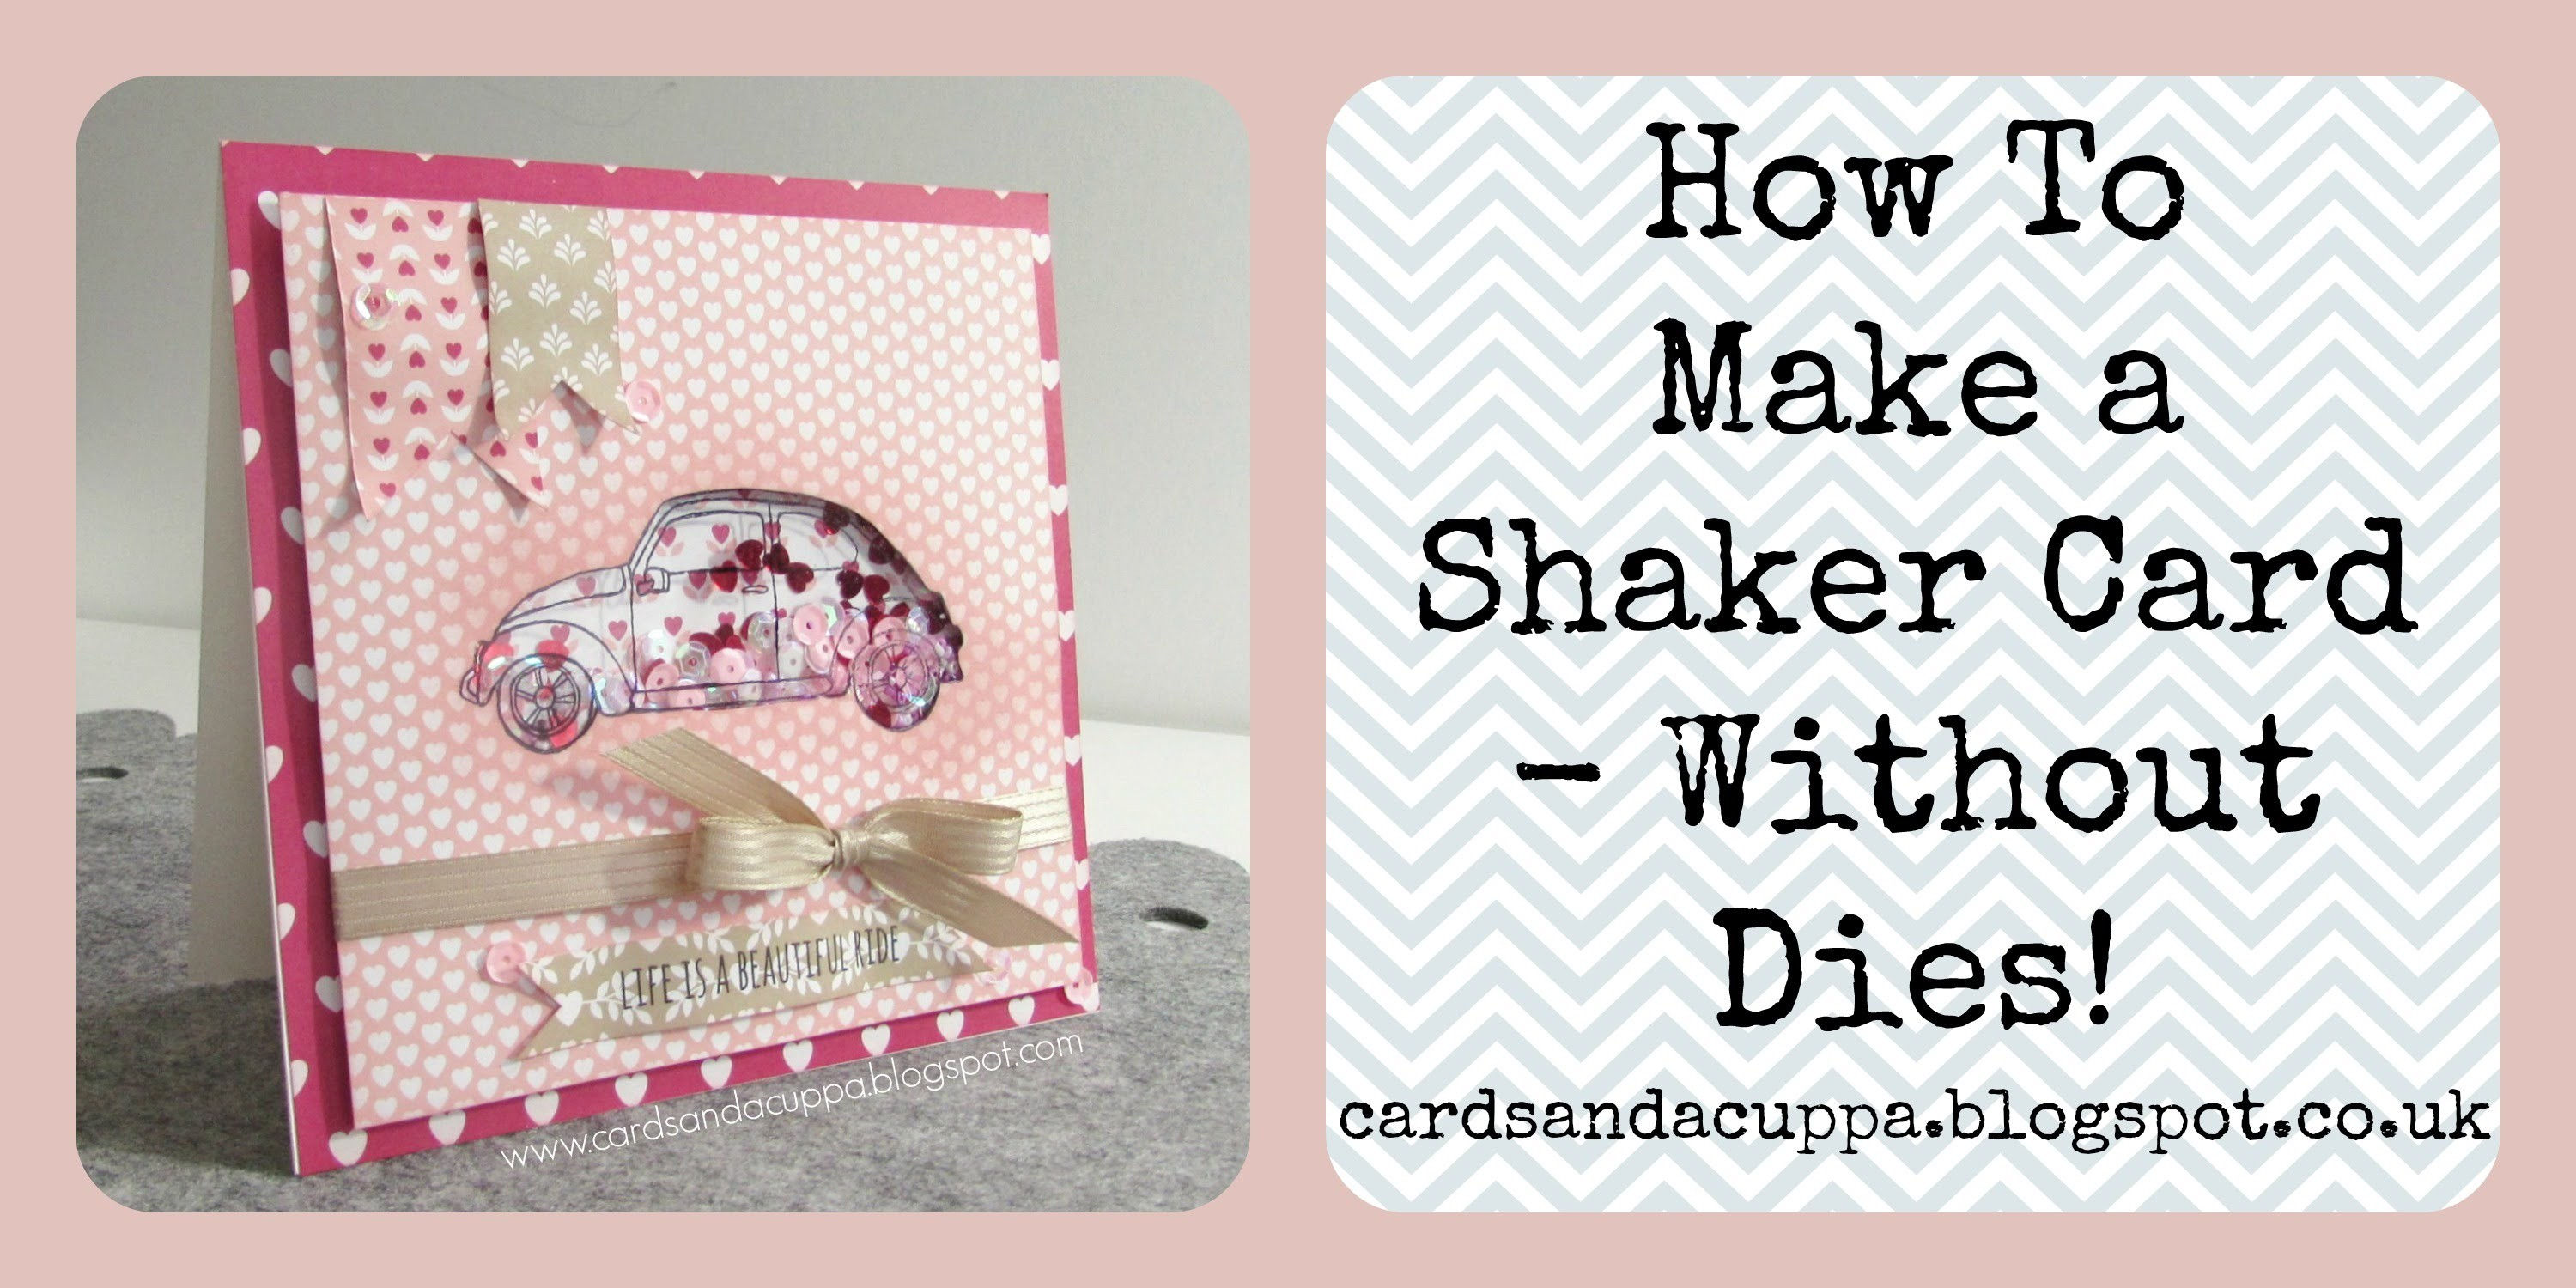 Make a Shaker Card with No Dies using Beautiful Ride by Stampin' Up!